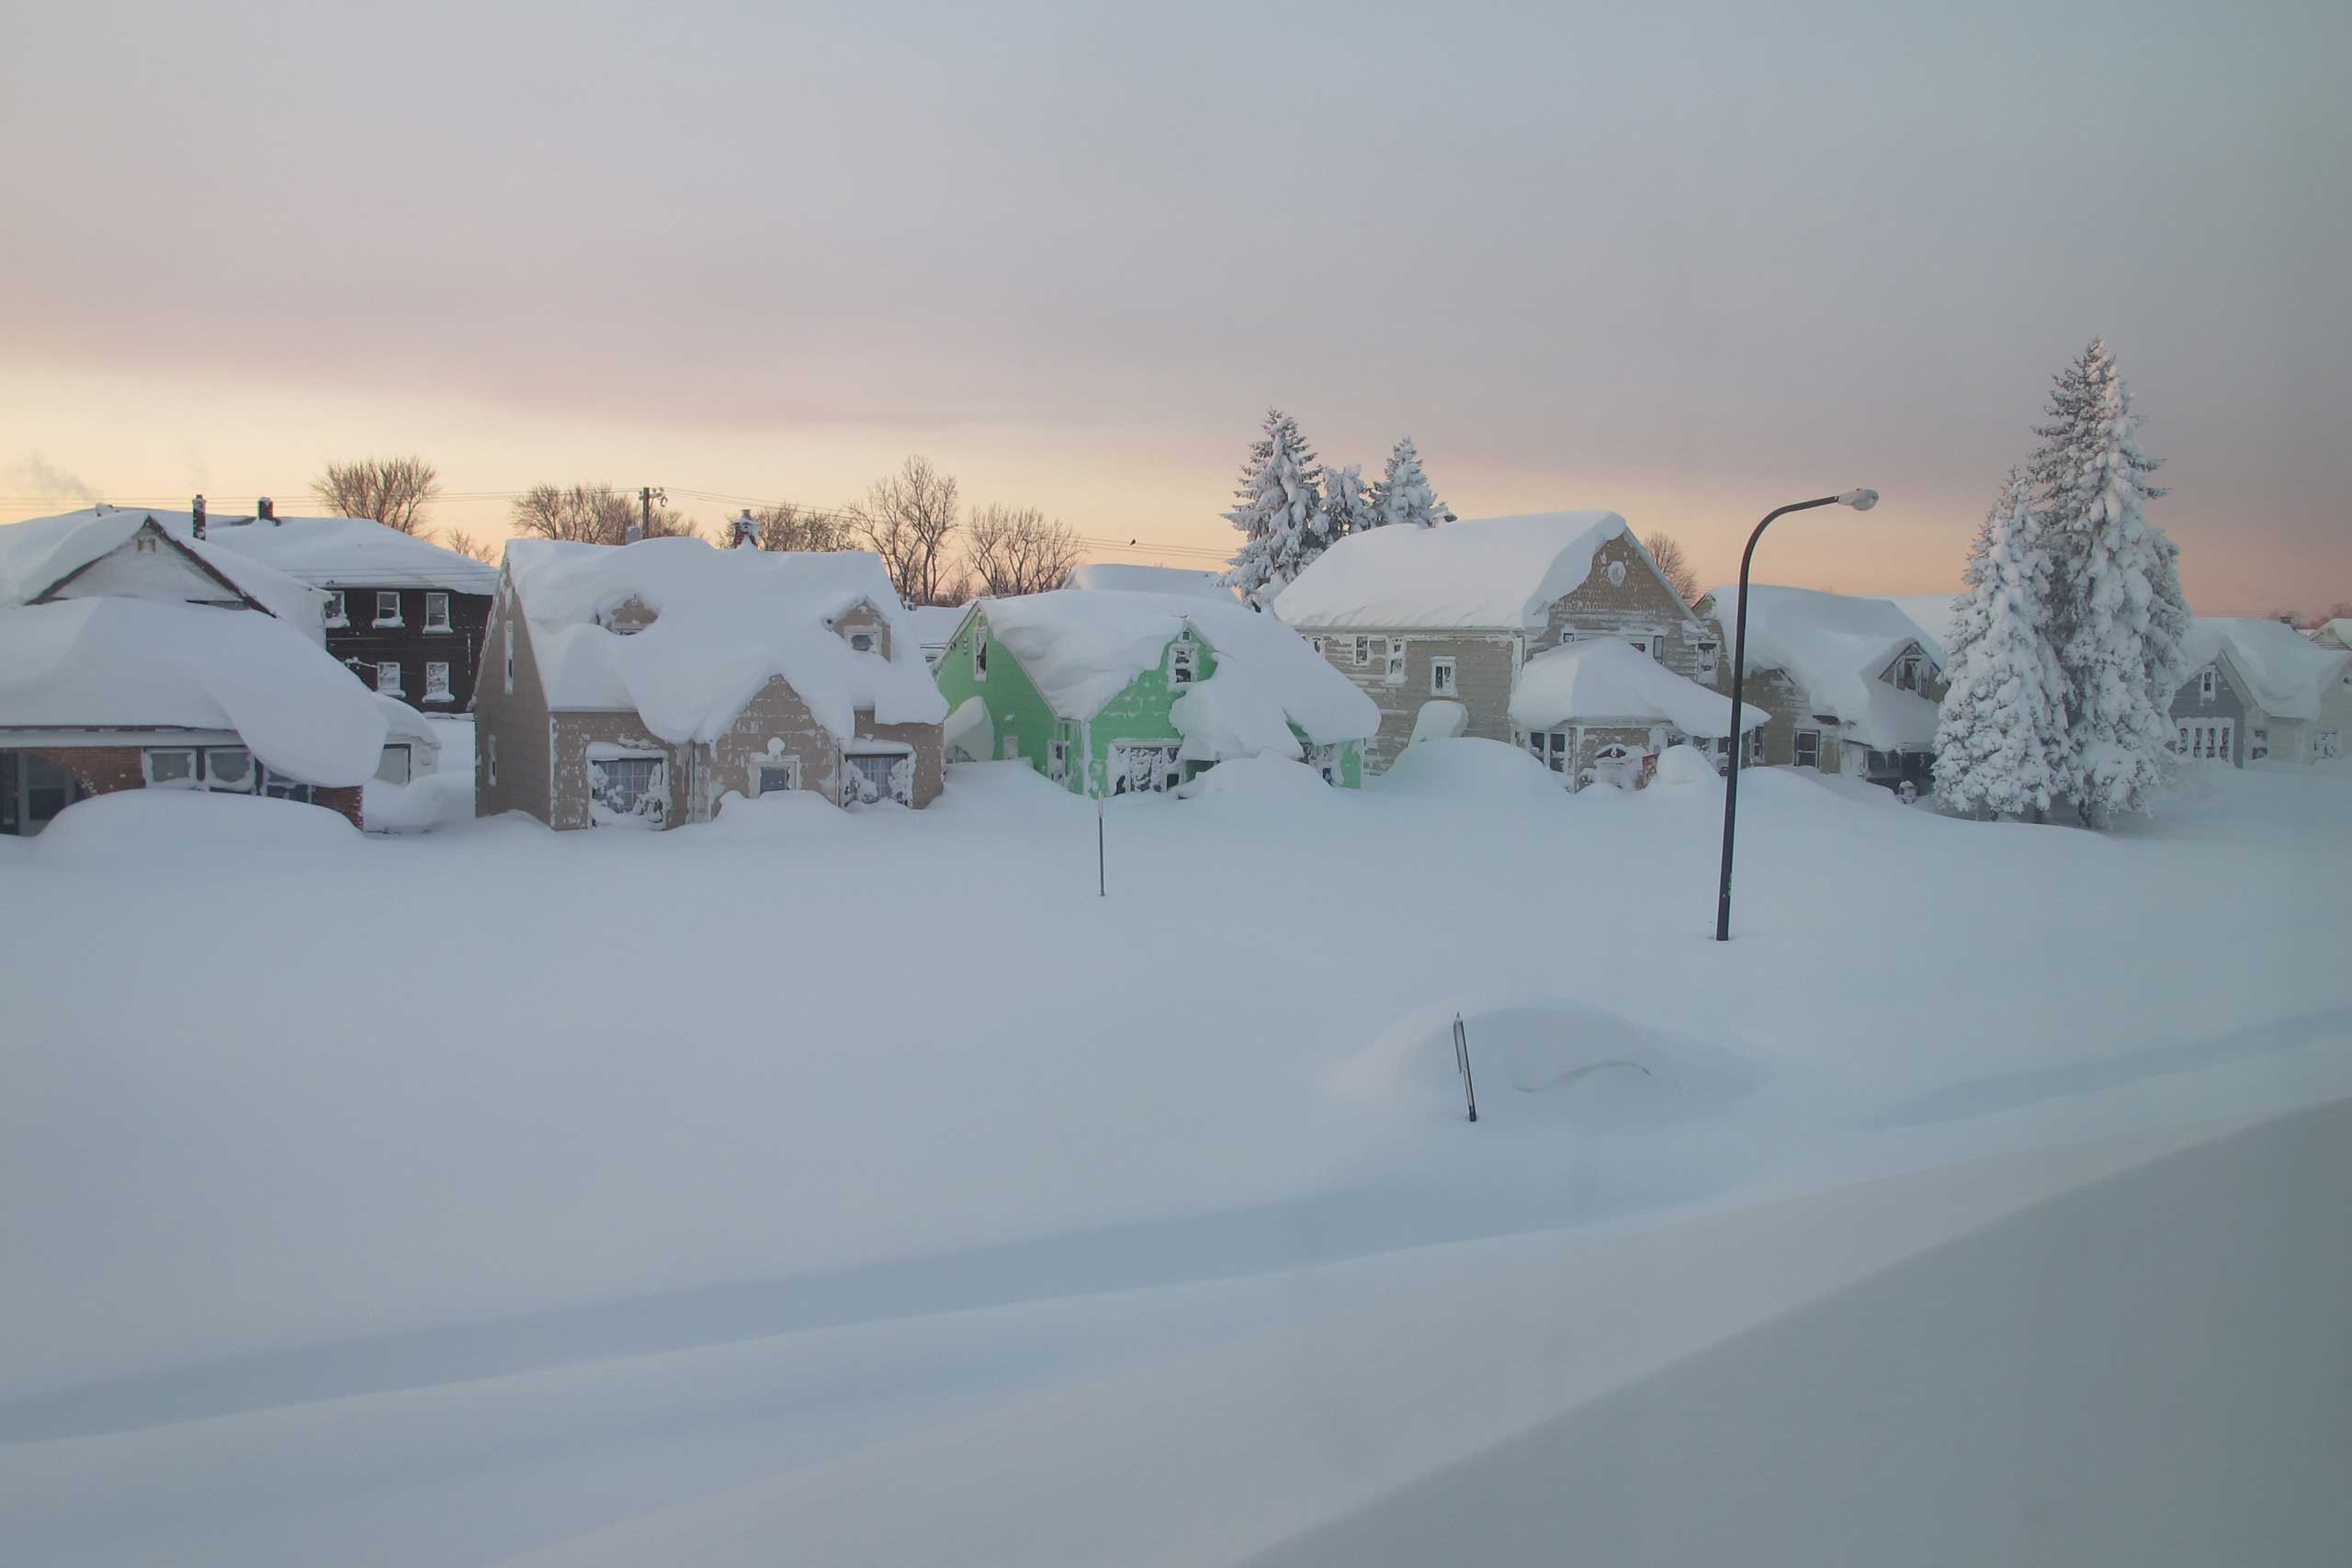 Nov. 19, 2014. Snow covers a street at daybreak in south Buffalo, N.Y. The snowstorm has buried sections of western New York in more than 5 ft. of snow, killing 12 people.